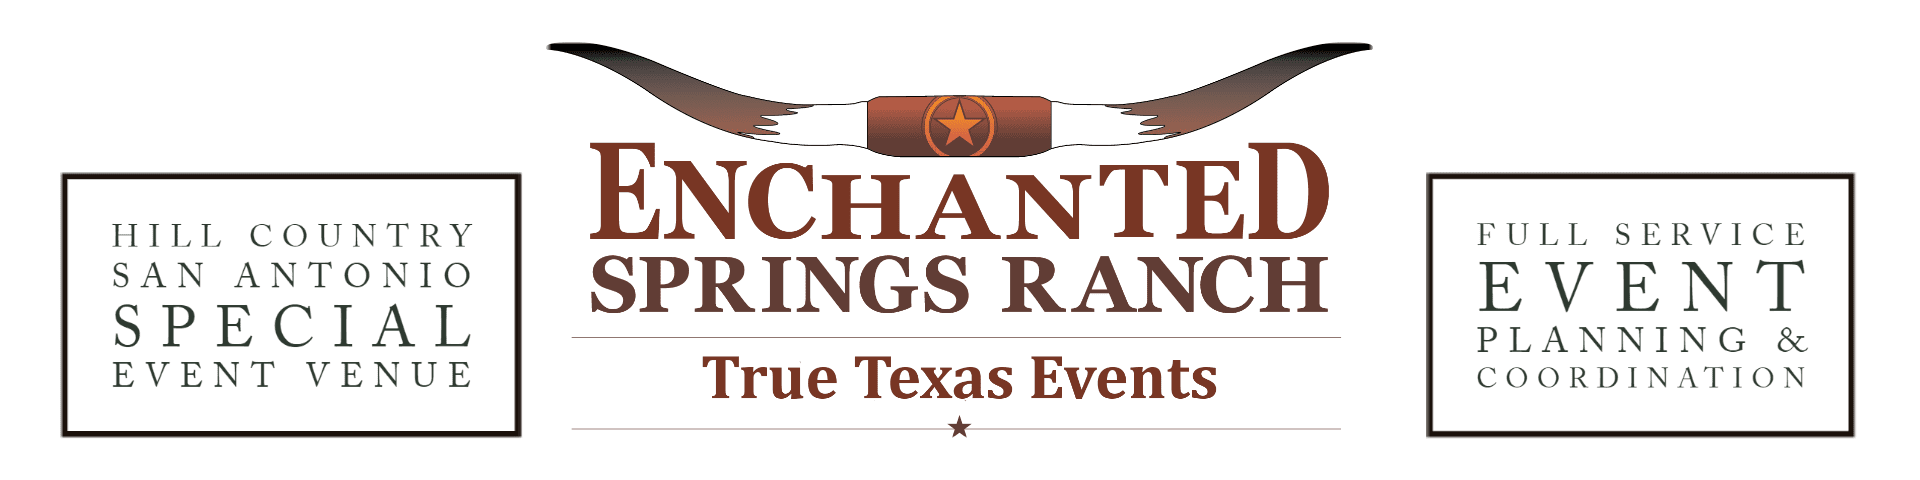 Corporate Event Venue | Team Building in San Antonio Logo